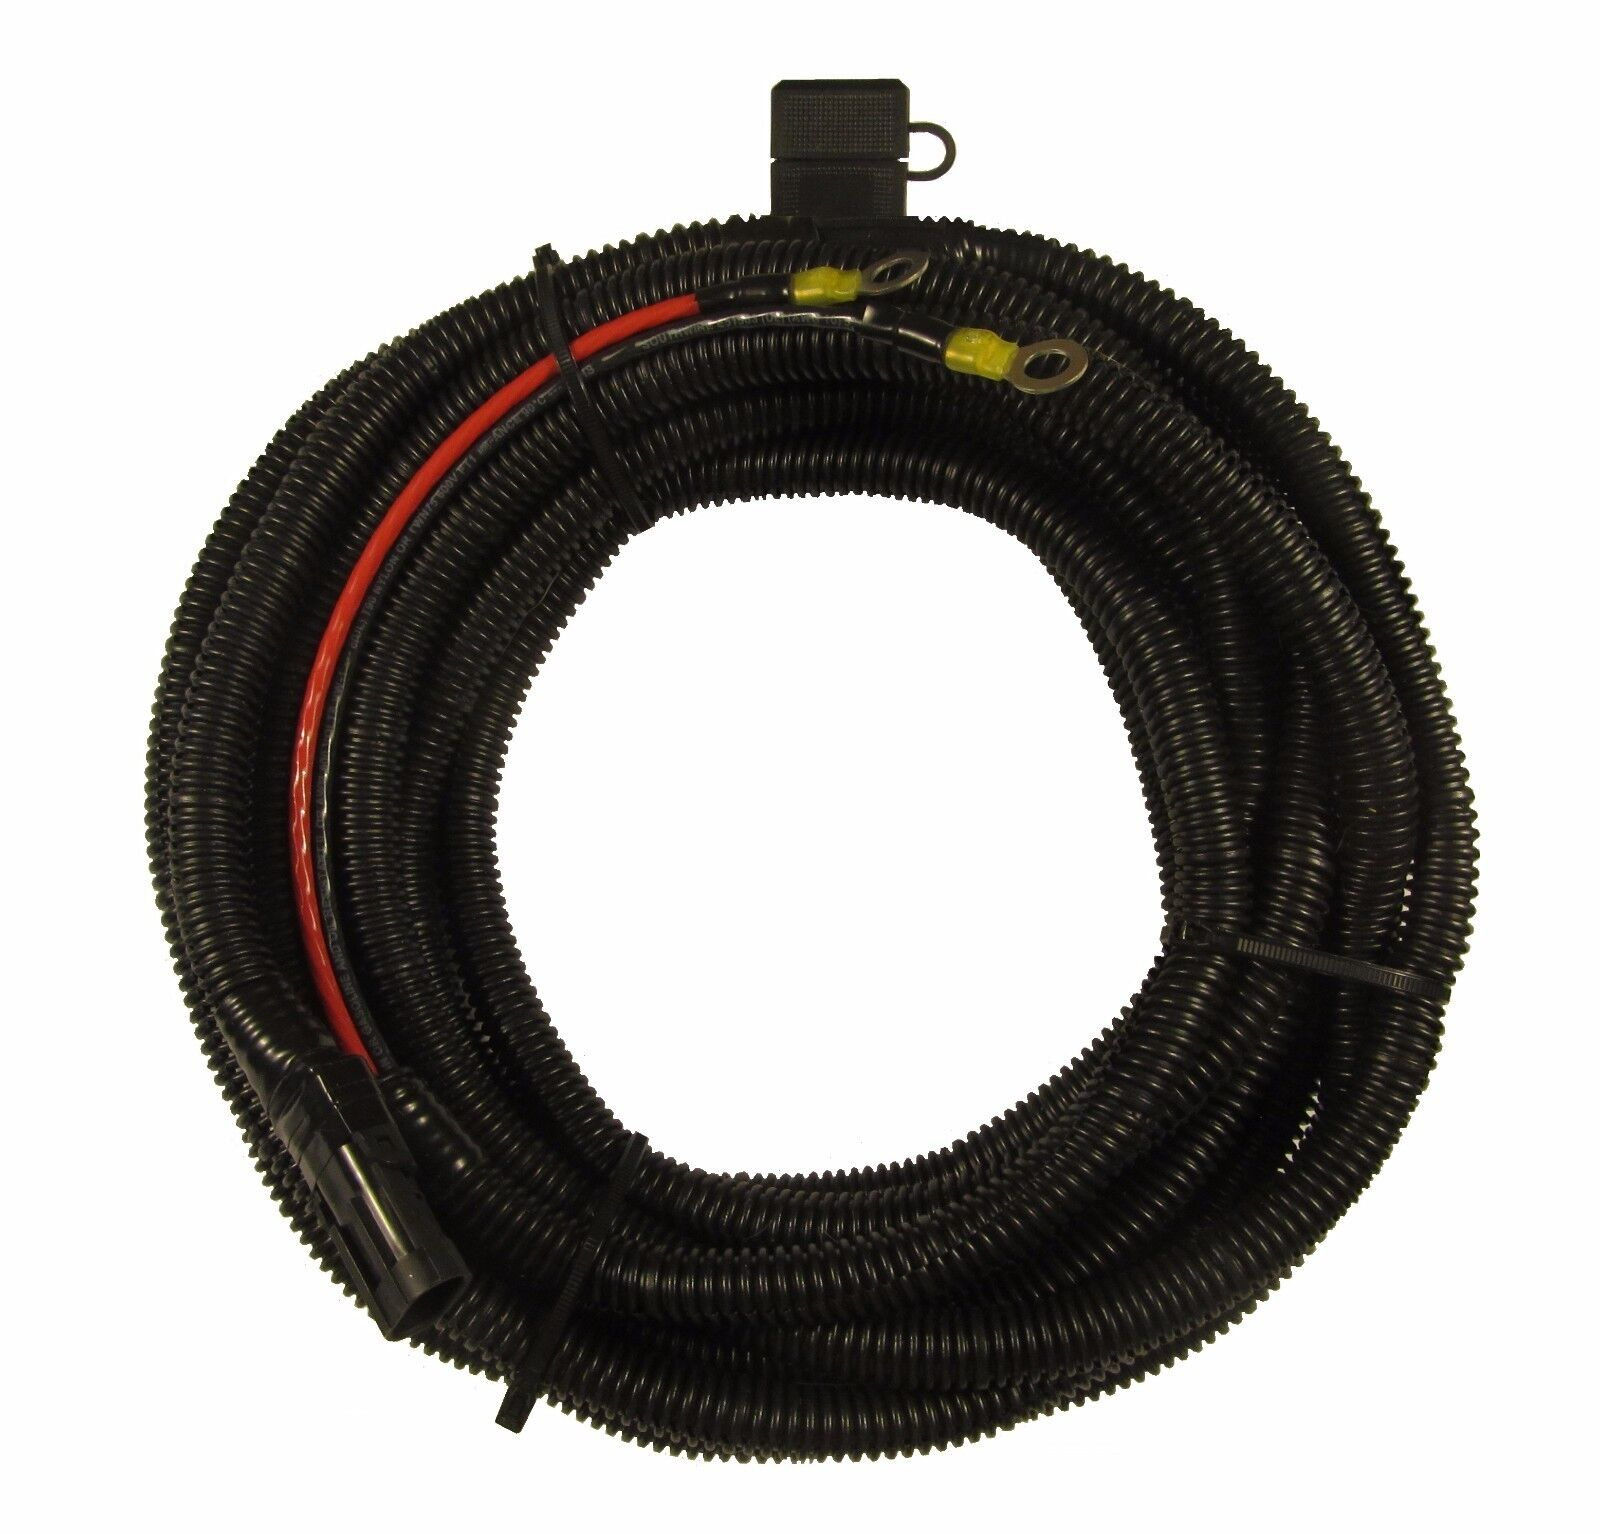 s l1600 harmar electric lift battery cable wiring harness 25ft 10 gauge ebay battery wiring harness at aneh.co